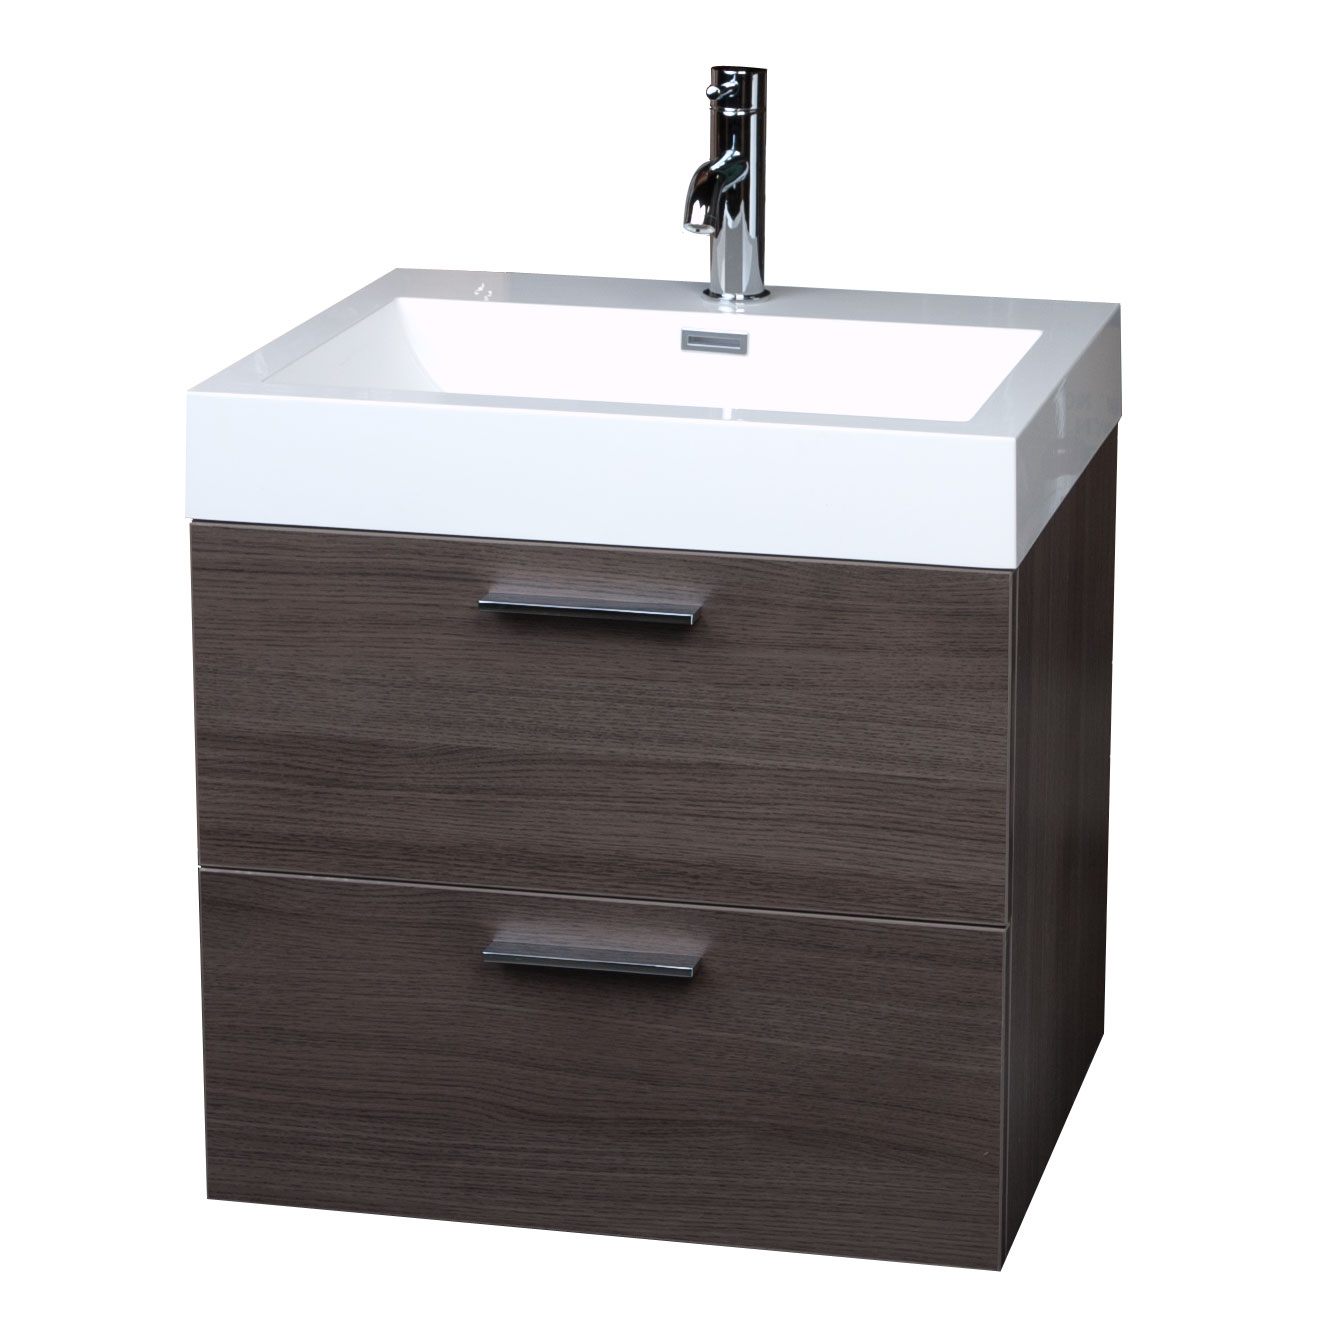 European styled single bathroom vanity set in grey oak for Single bathroom vanity